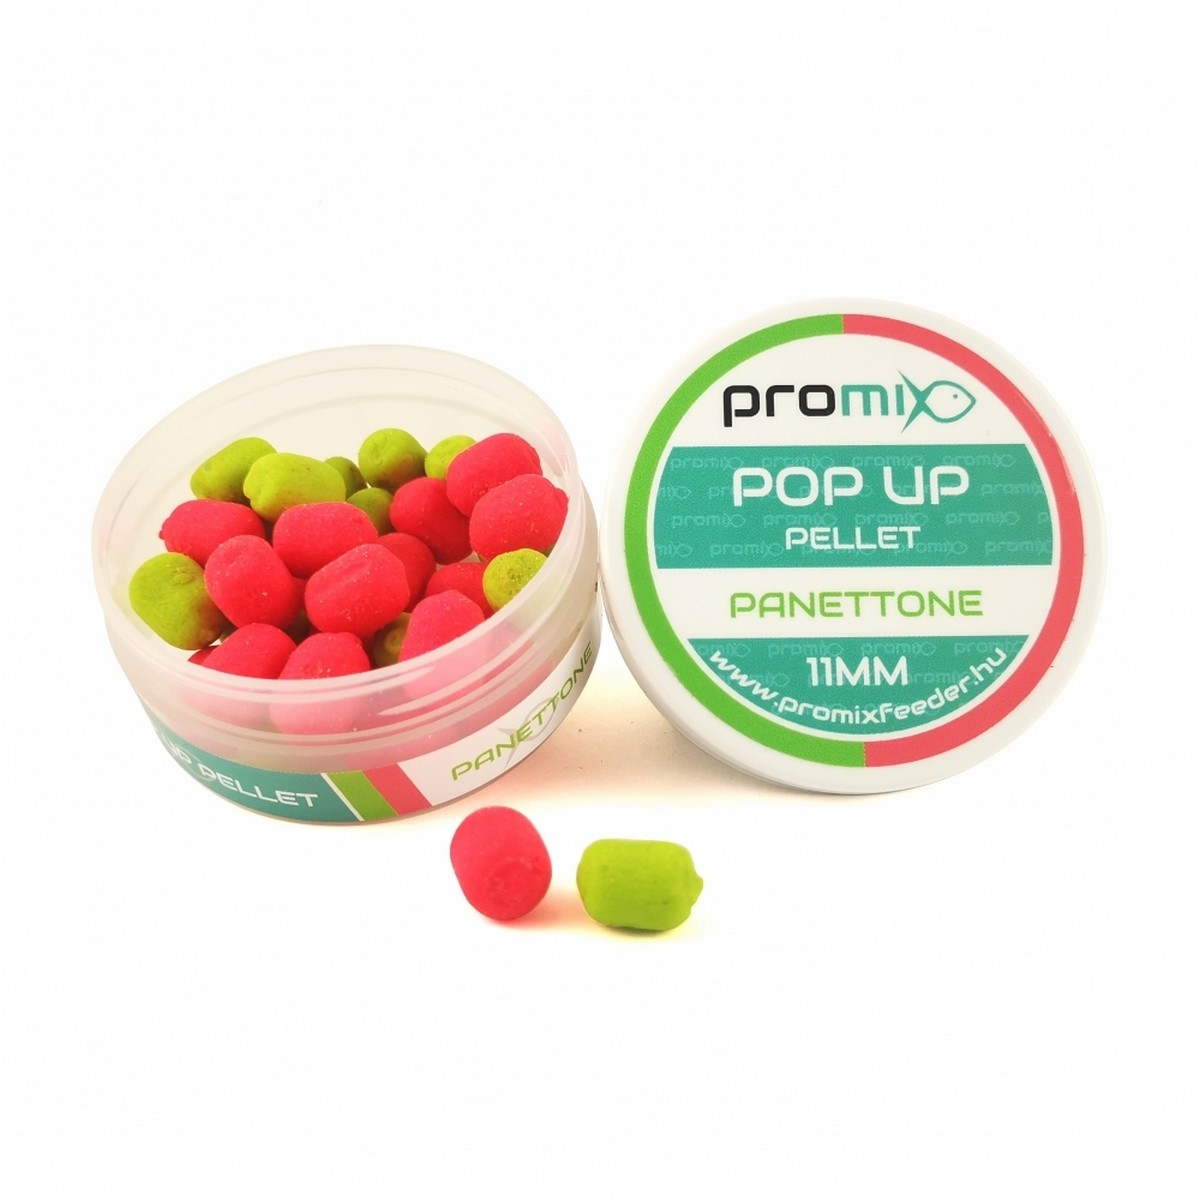 PROMIX POP UP PELLET 11MM PANETTONE 20G